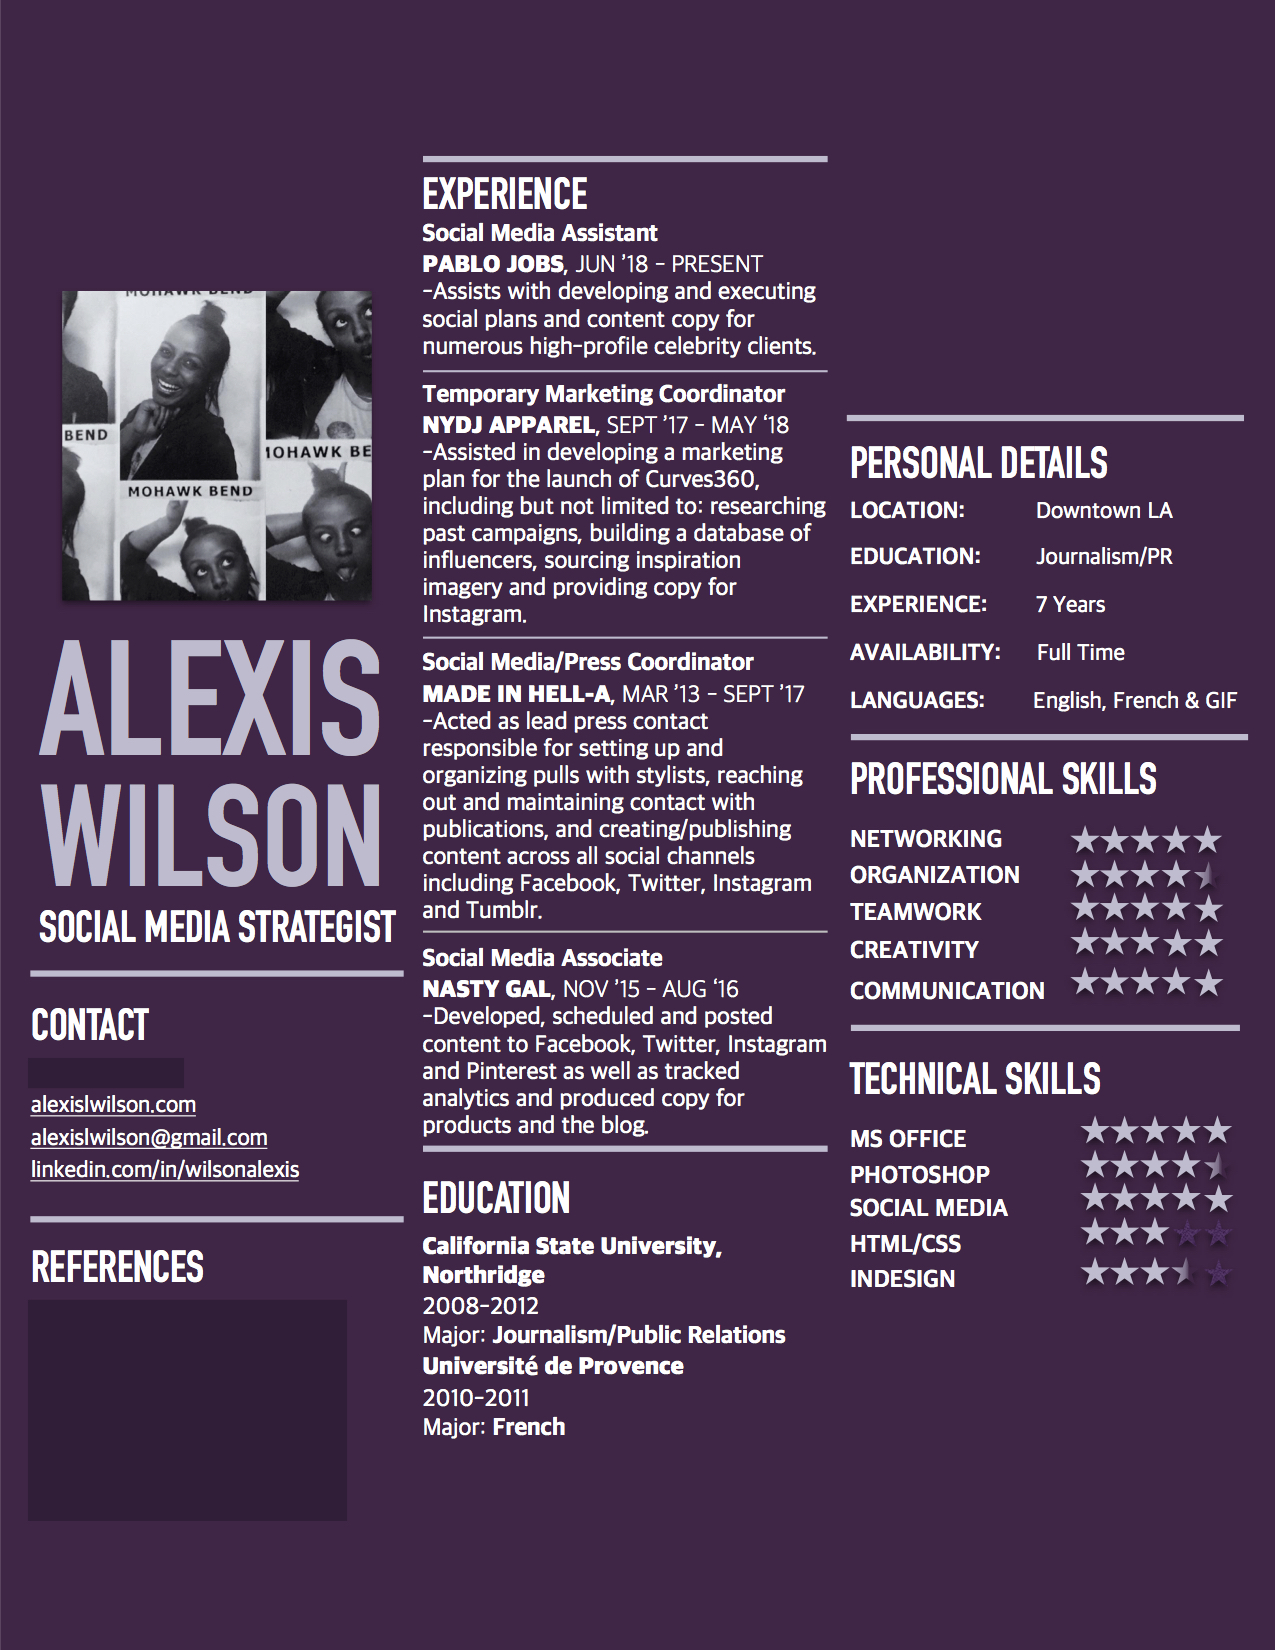 Alexis Wilson Resume 2018 BLURRED.jpg